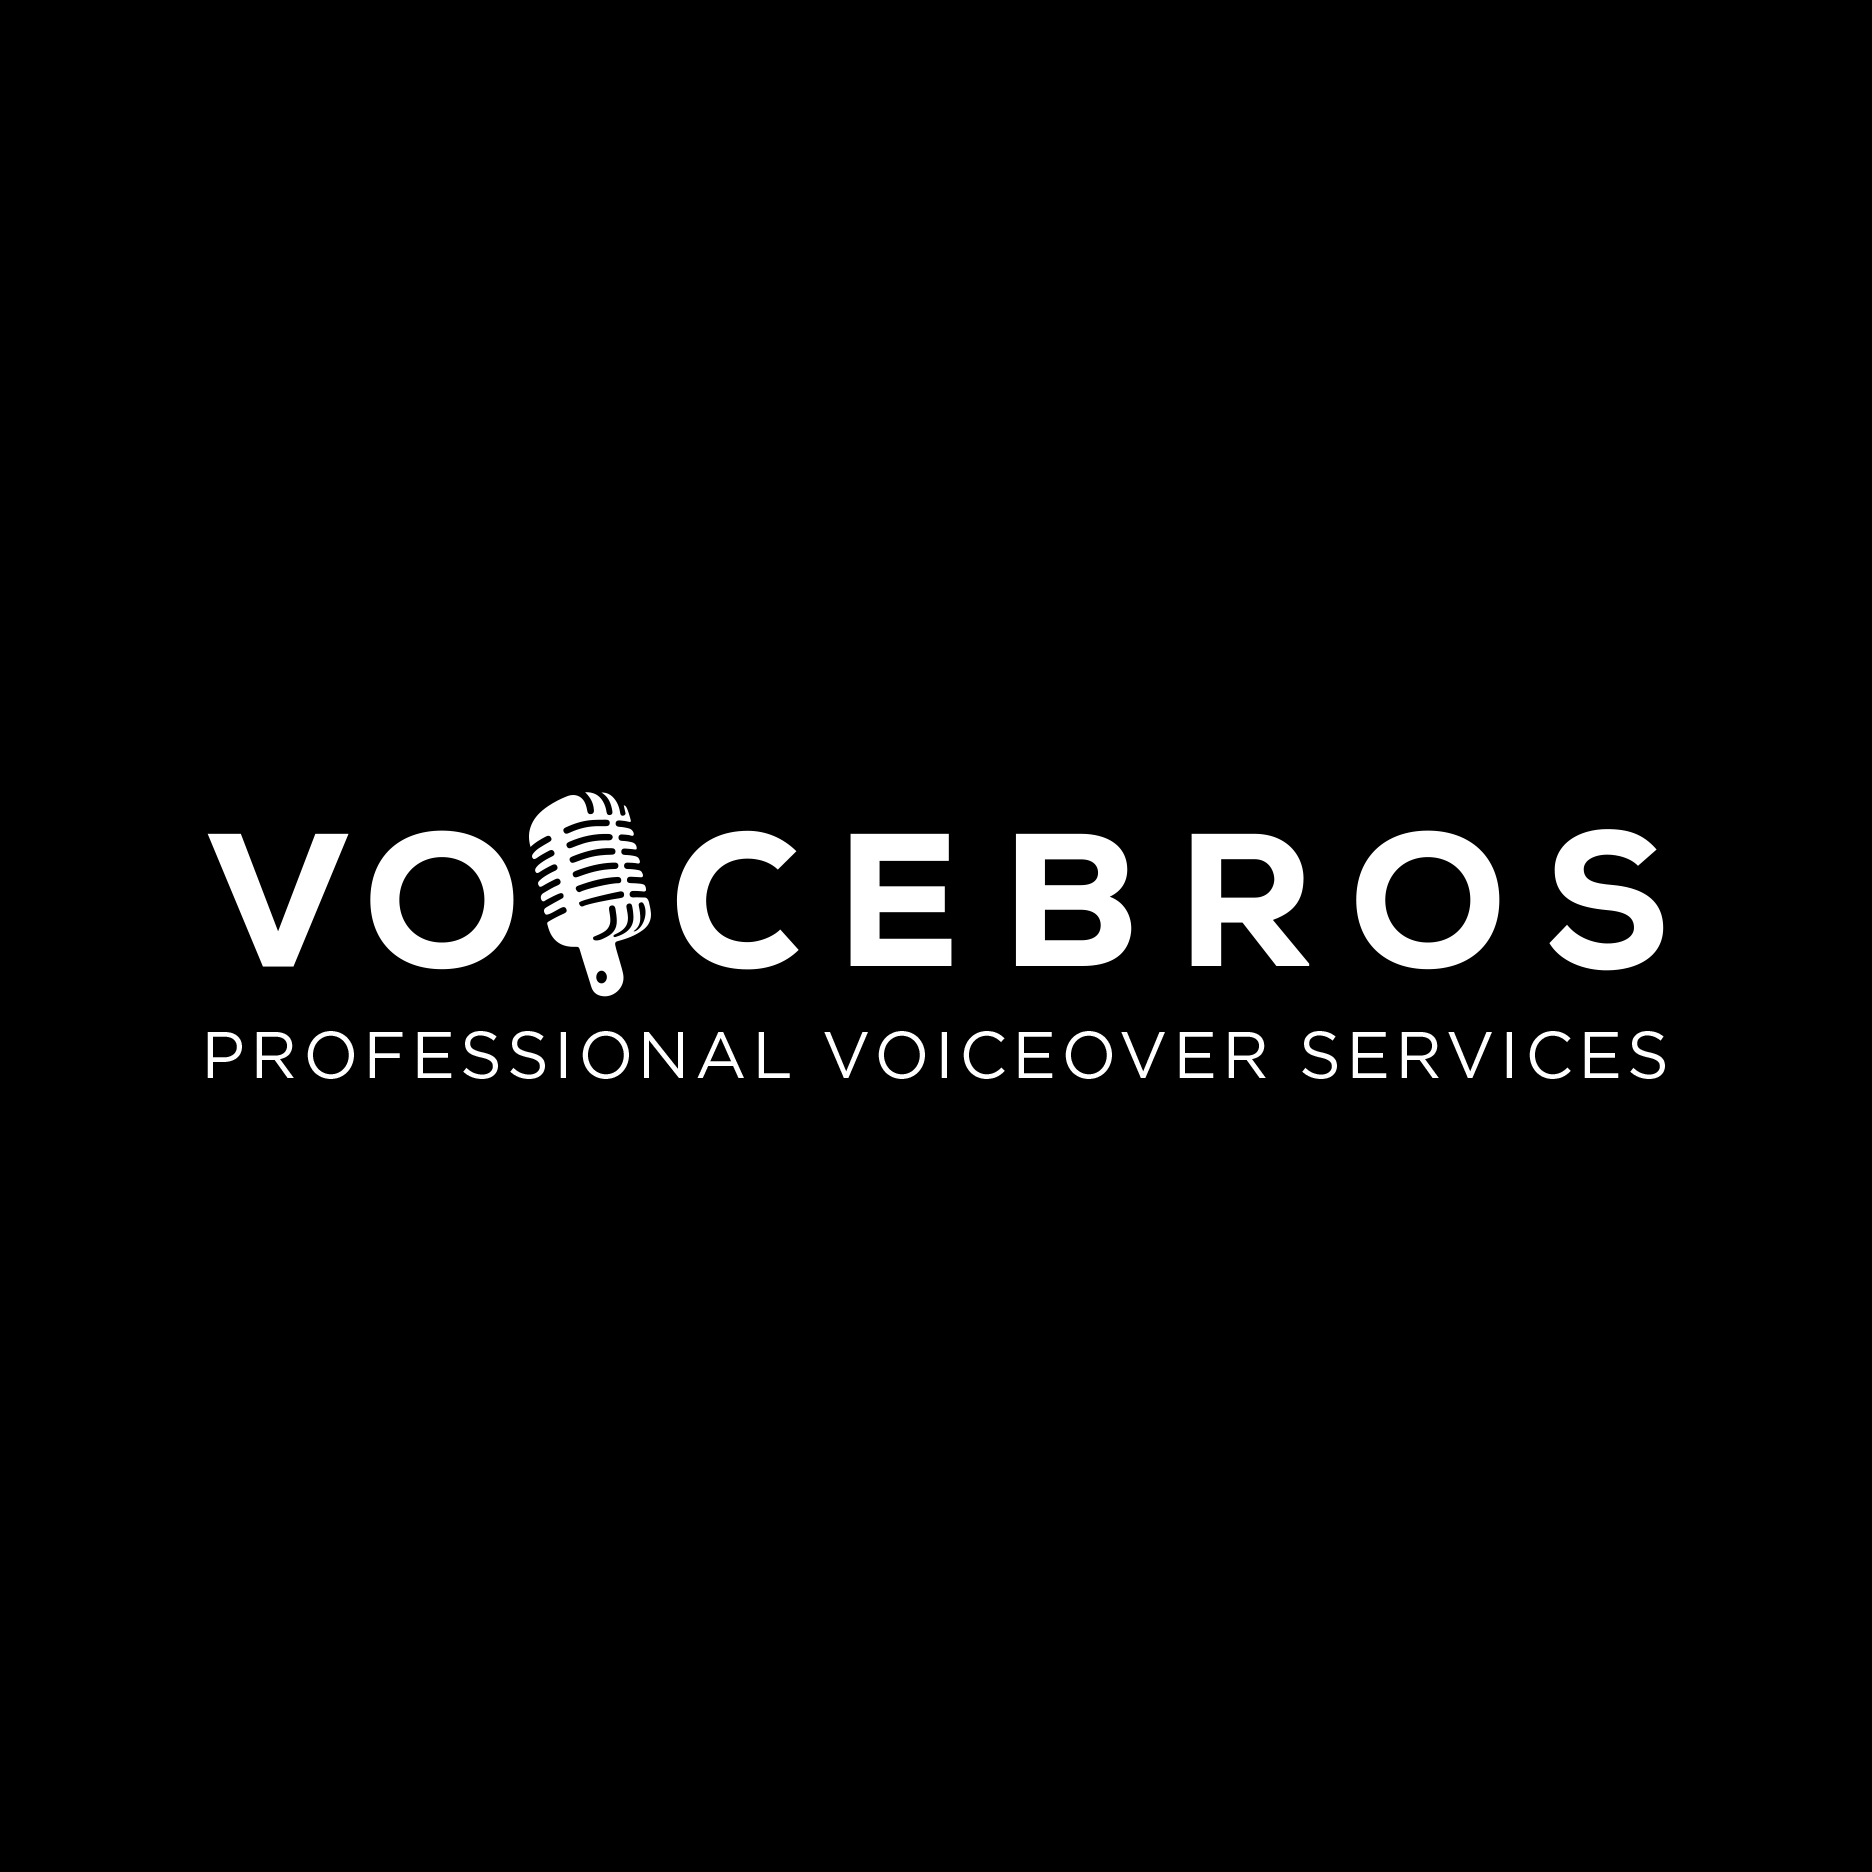 Aaron Shedlock is a voice over actor